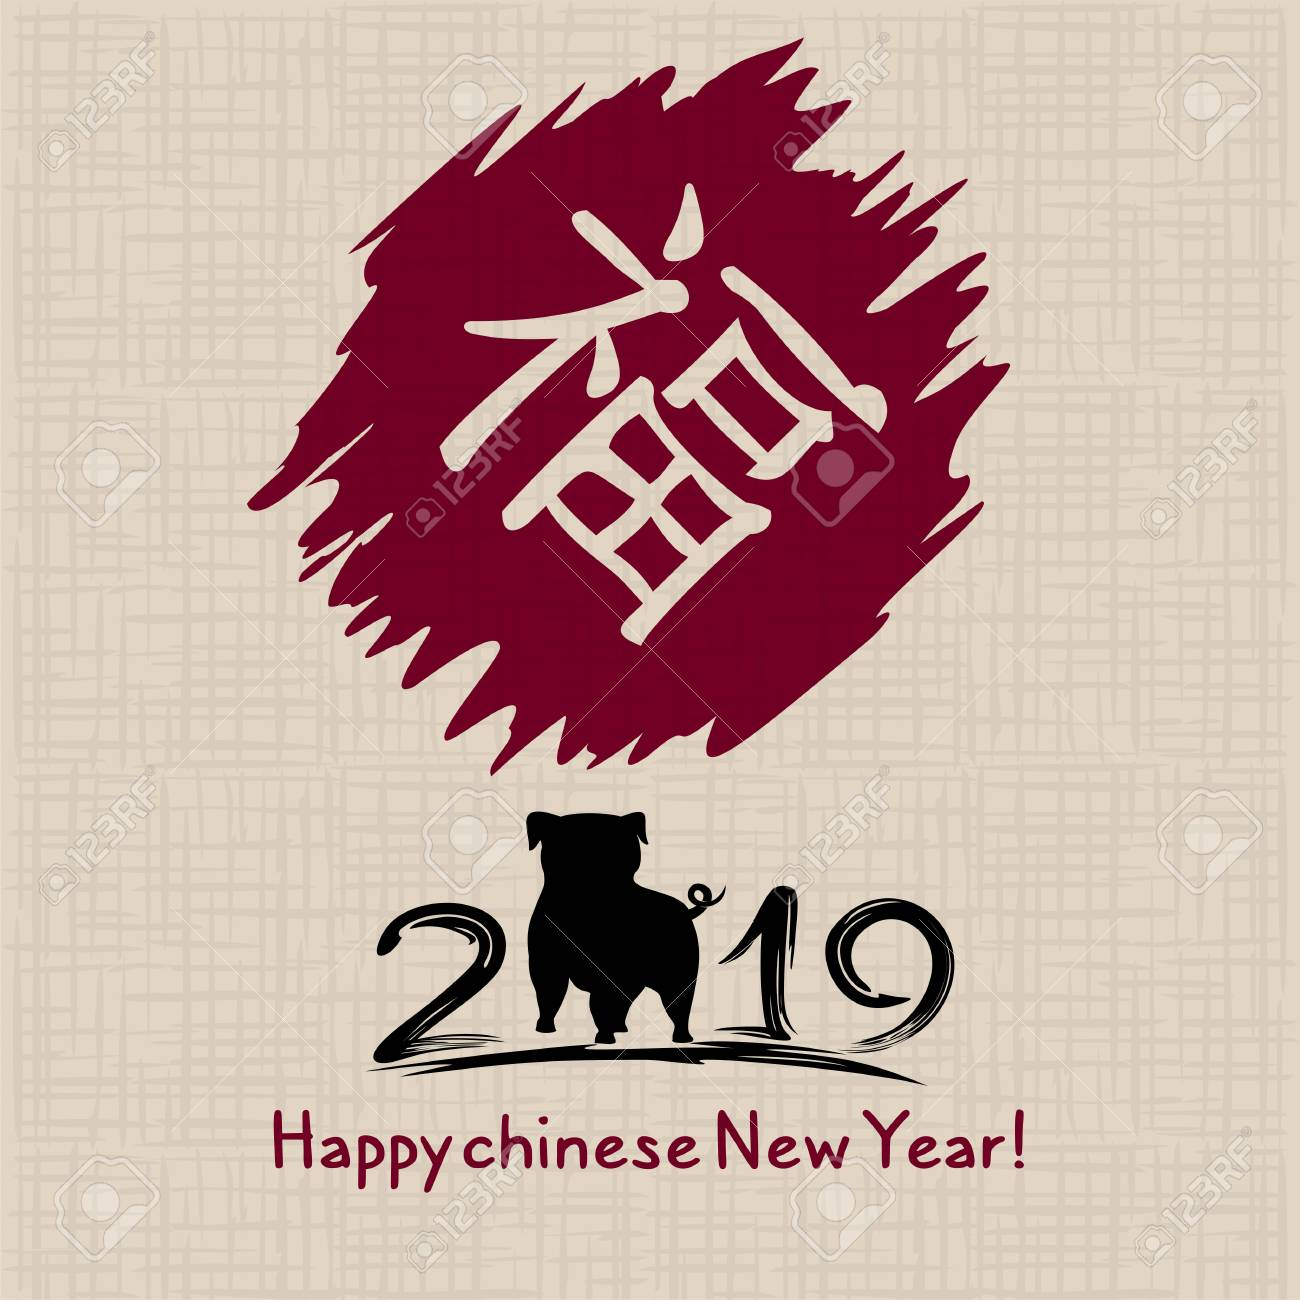 Chinese New Year 2019 Greeting Card Pig Traditional Symbol